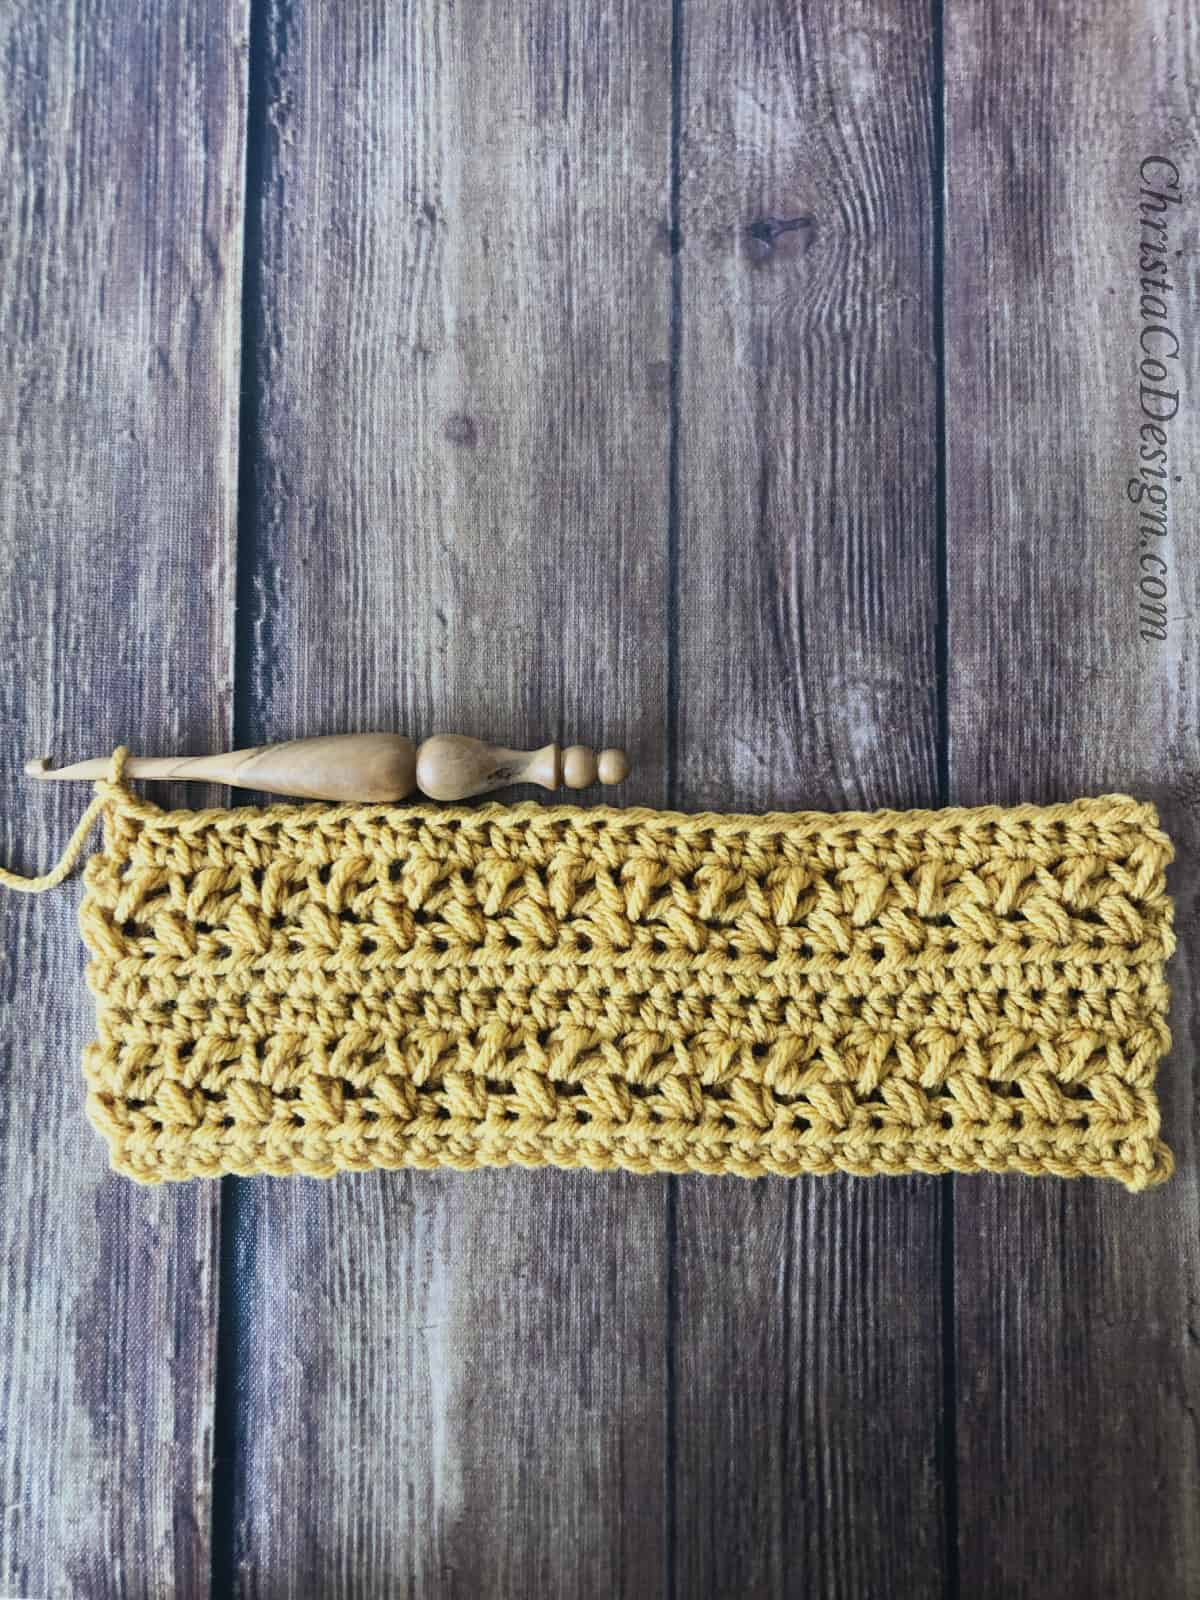 picture of mustard colored crochet cup cozy pattern